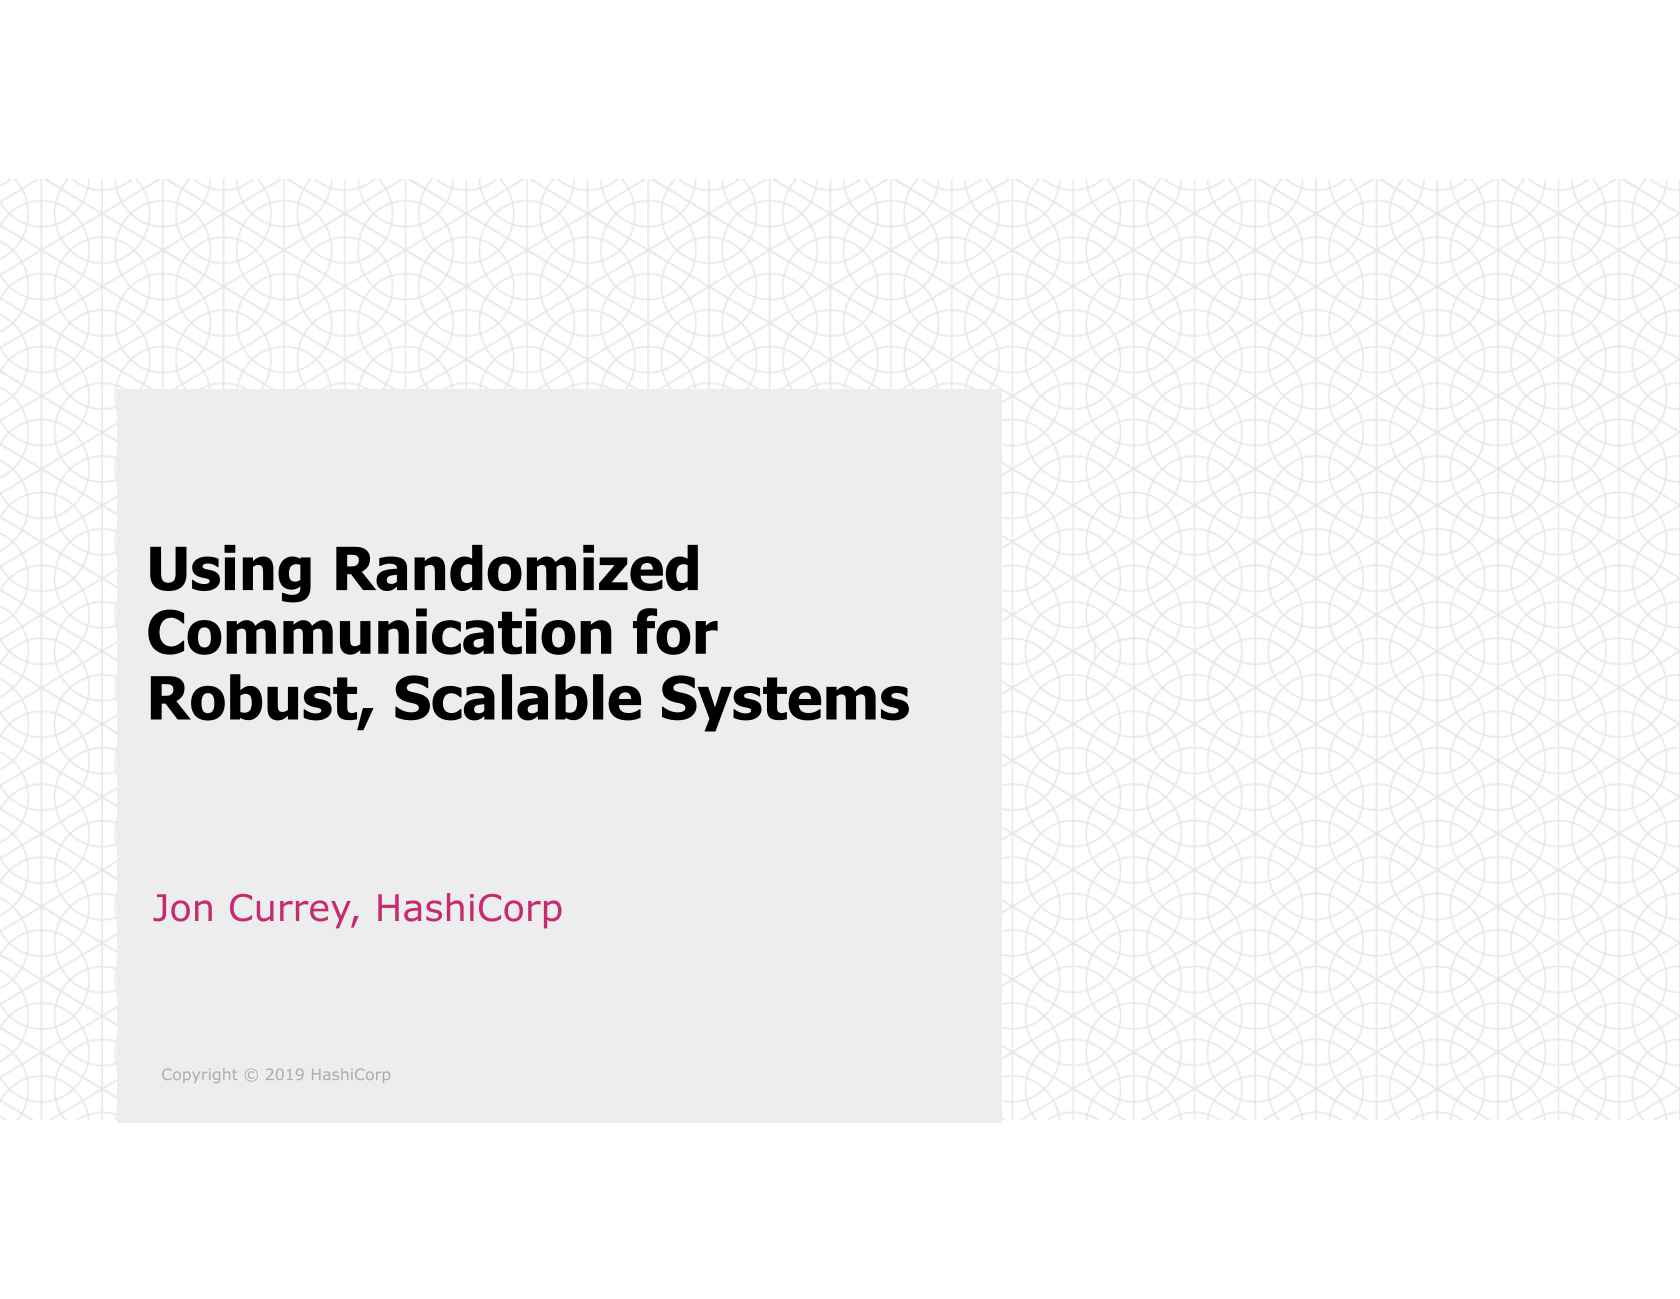 Using Randomized Communication for Robust, Scalable Systems